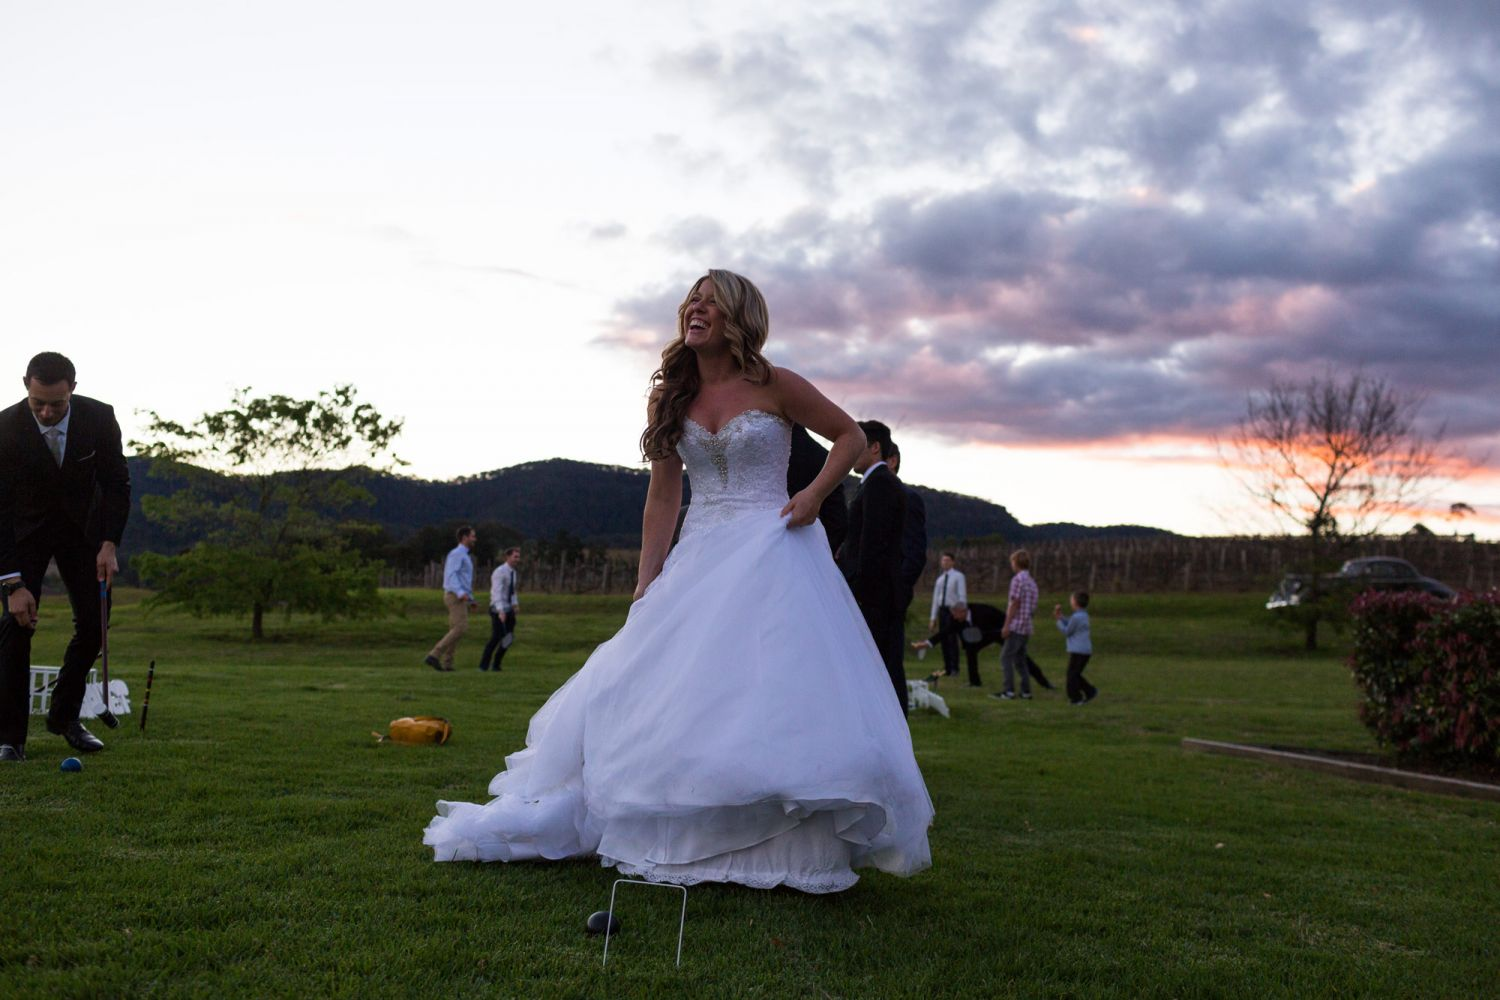 26_wedding-lawn-games-in-hunter-valey-at-lindemans